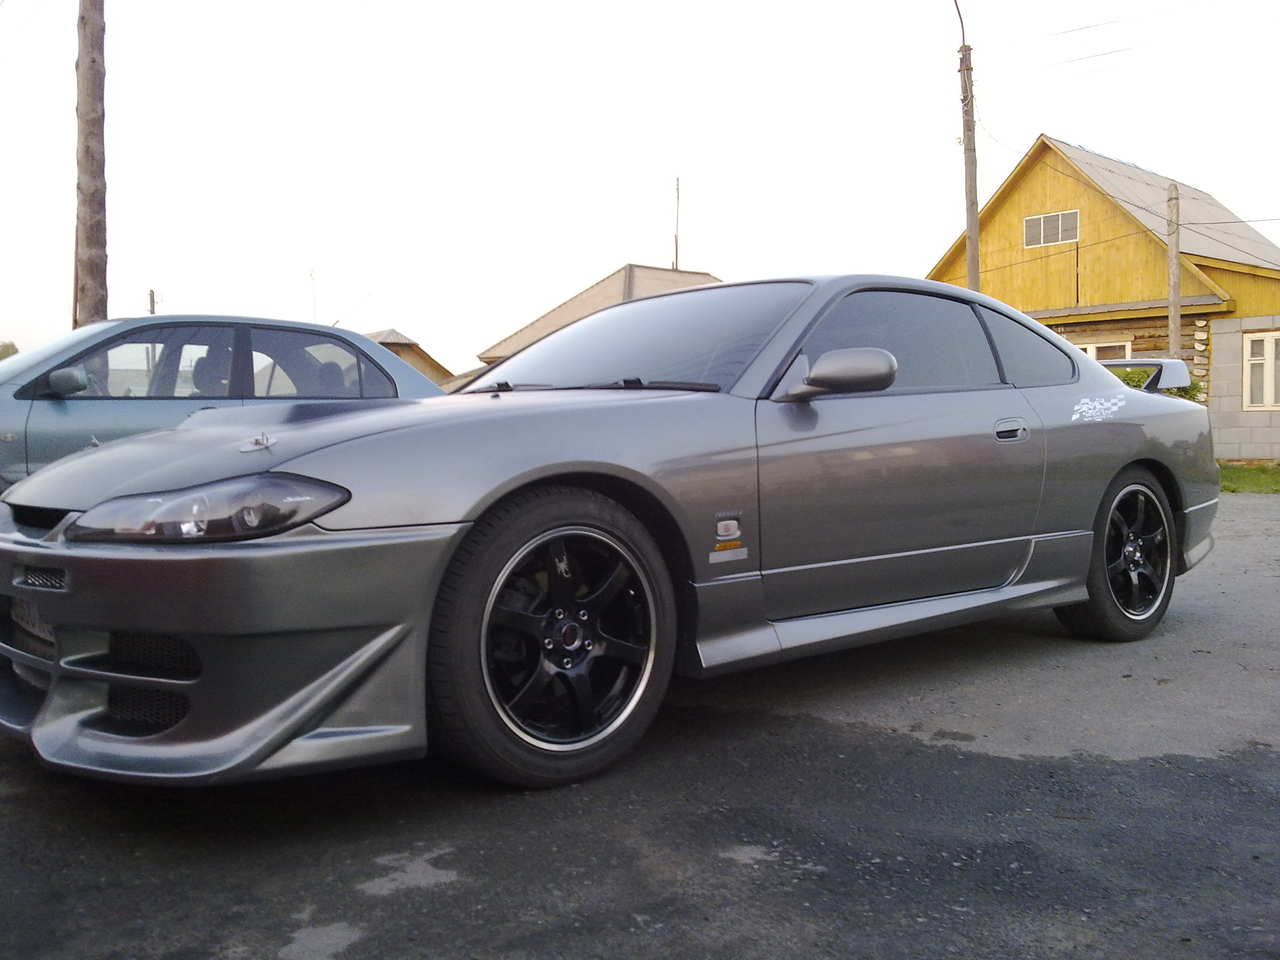 2001 Nissan Silvia For Sale 2000cc Gasoline FR or RR